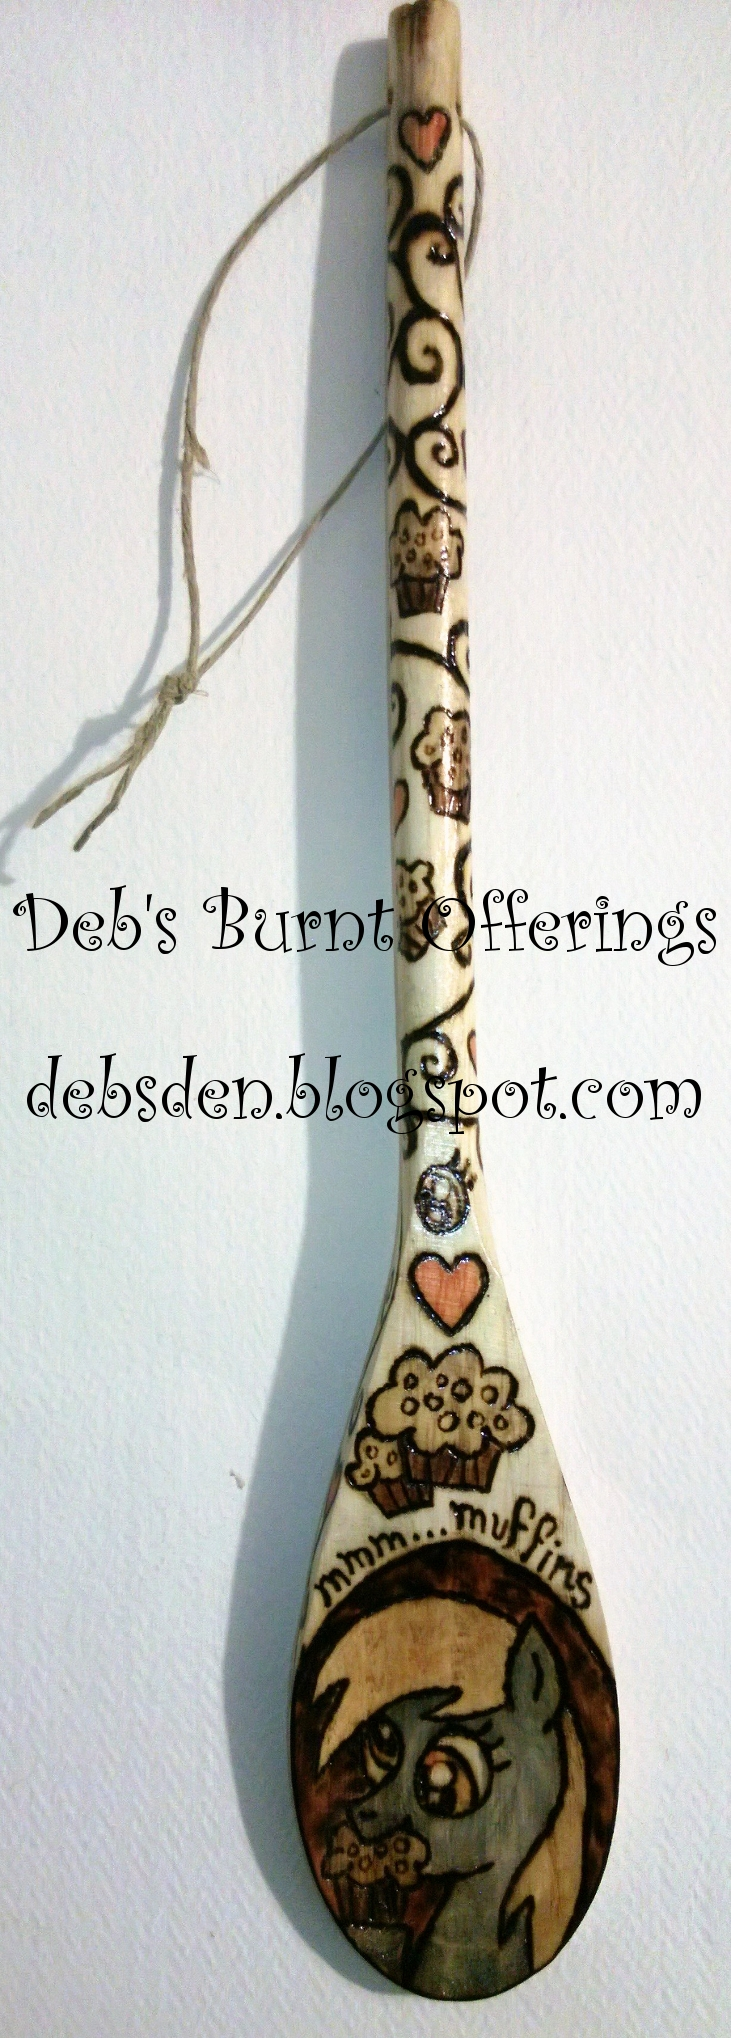 I Heart Muffins - Derpy Hooves wooden spoon